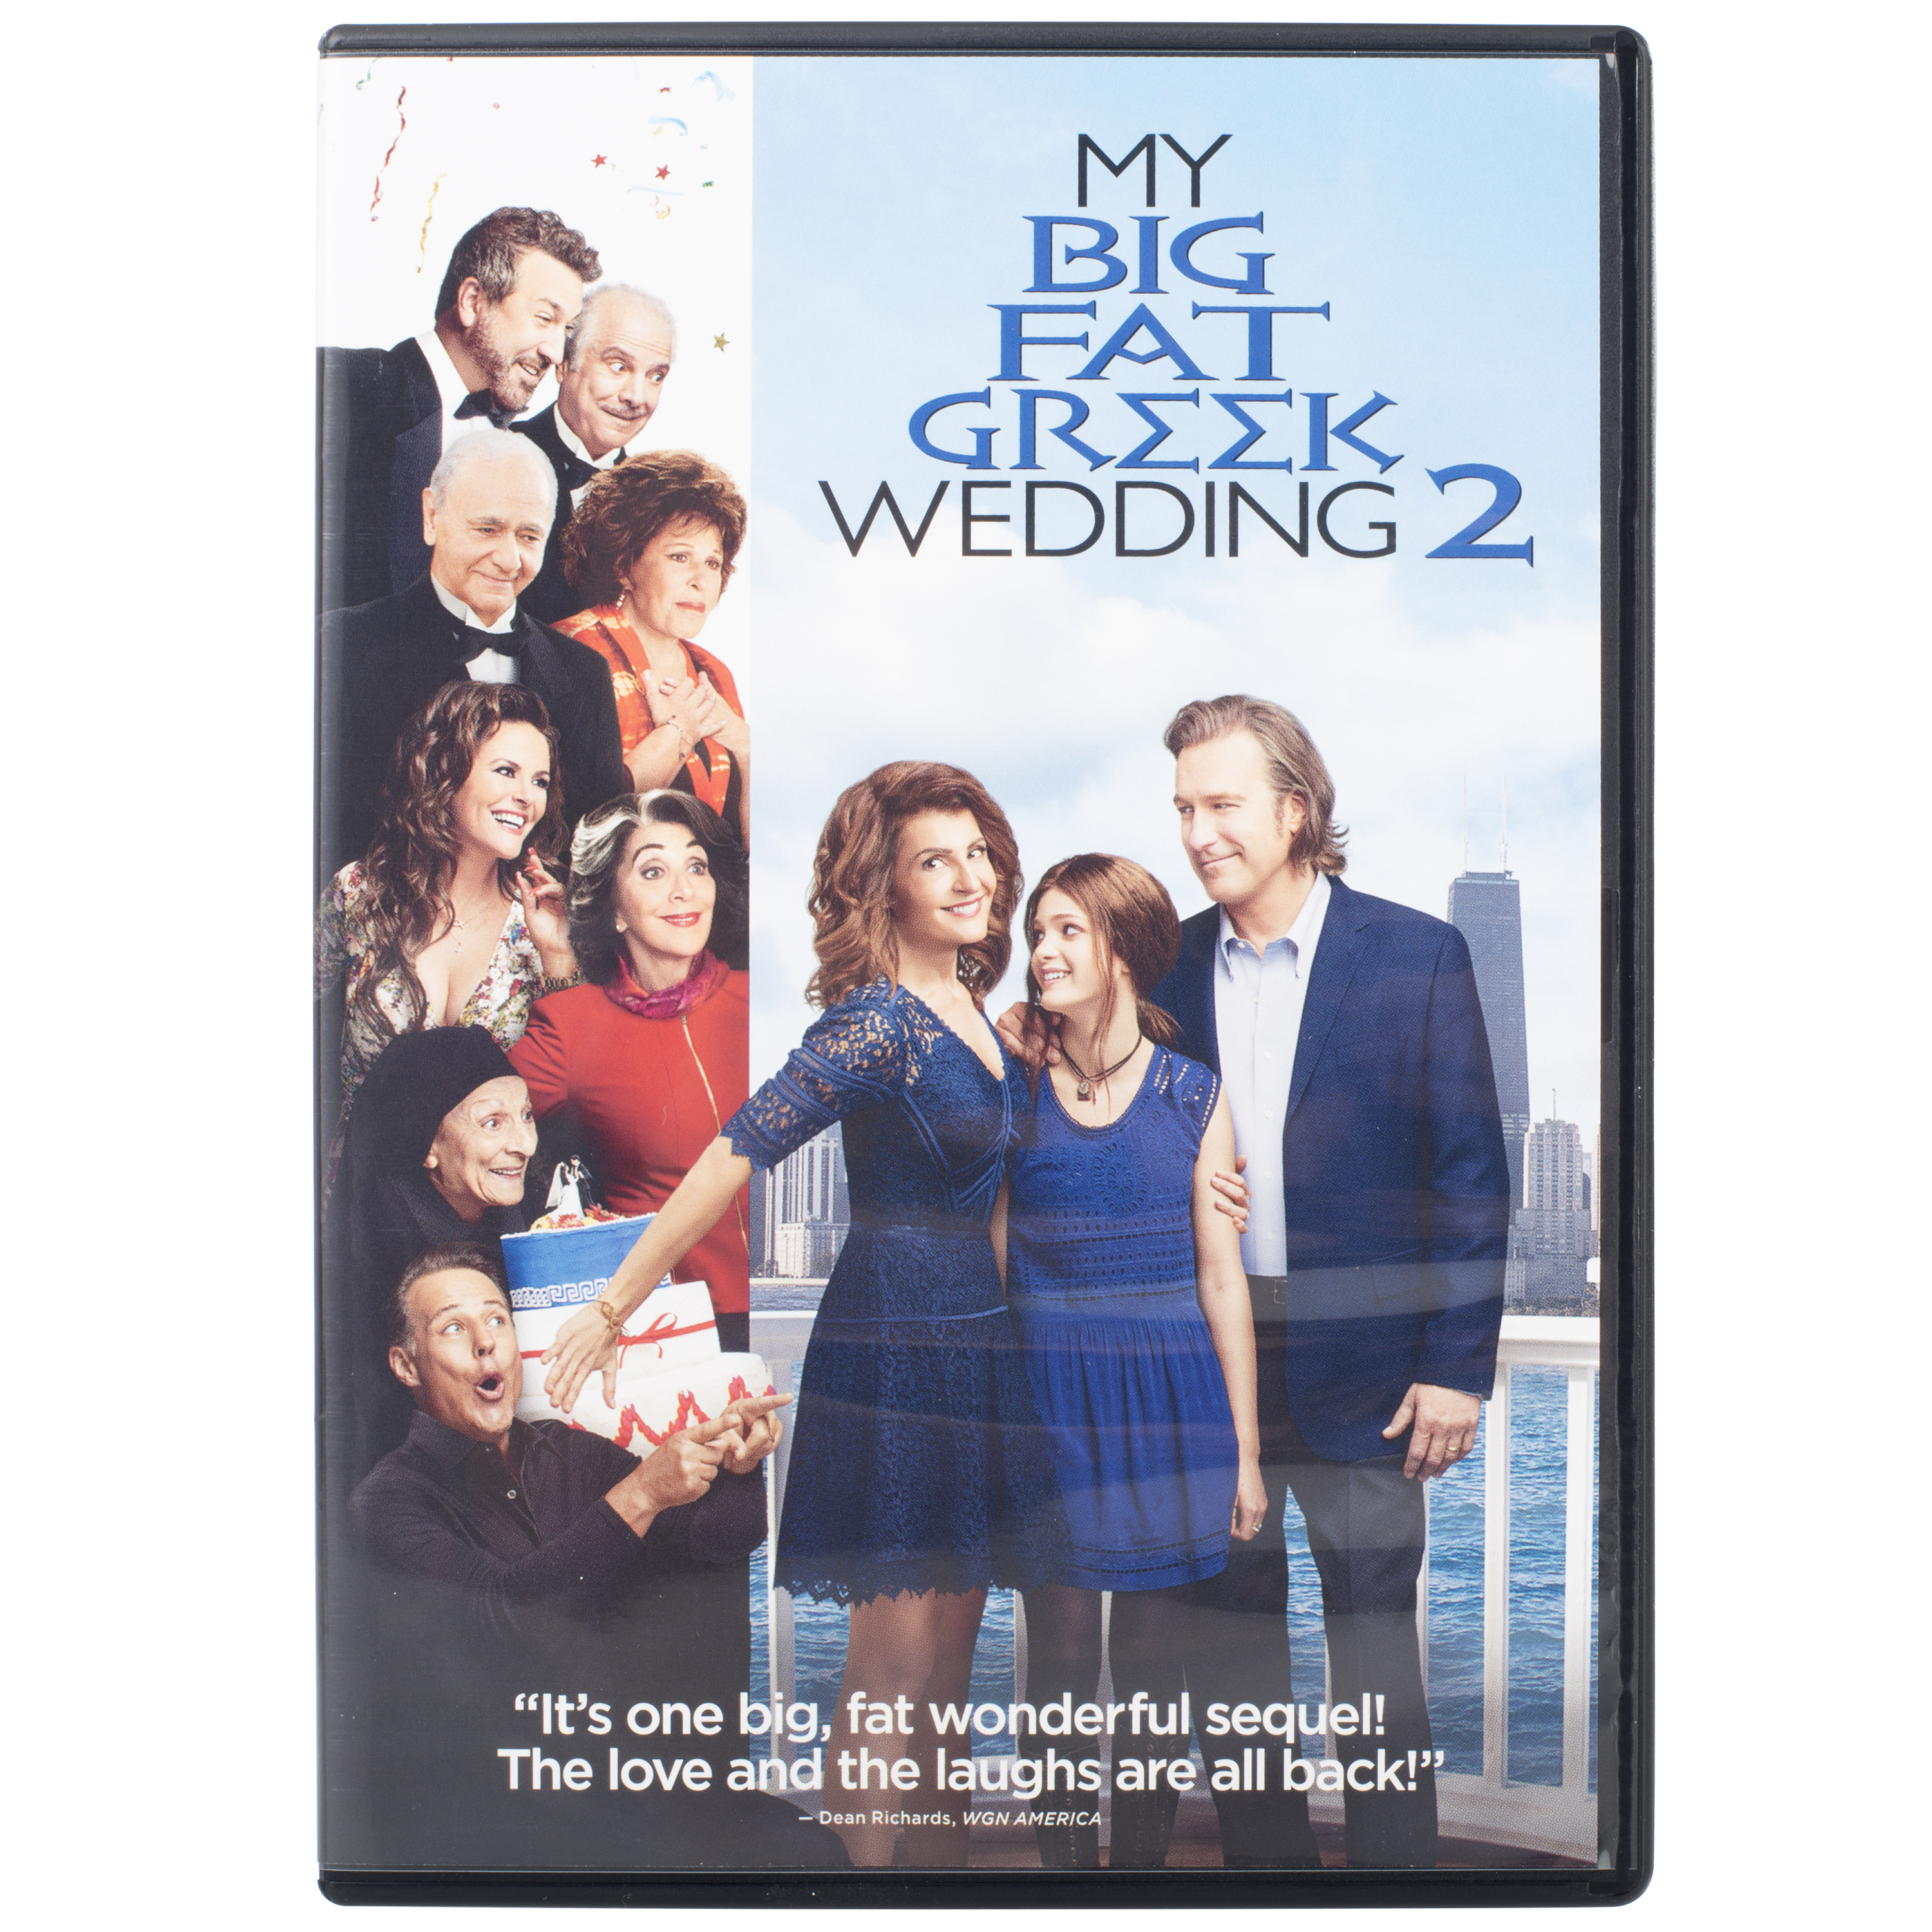 My Big Fat Greek Wedding 2, DVD Disc, Romantic Comedy Movie